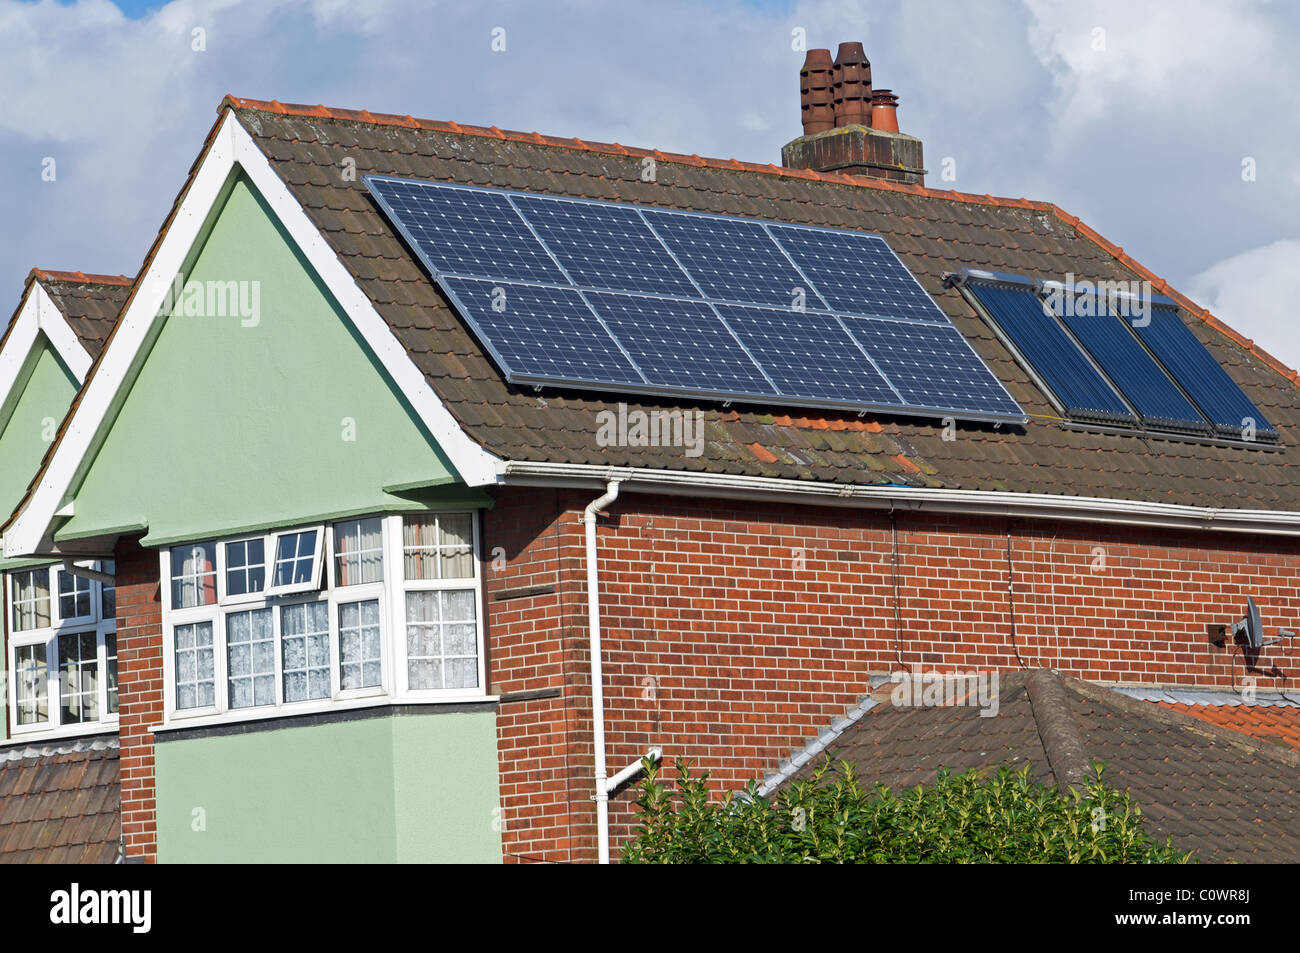 Solar panels for electricity and hot water fitted to roof of residential property in the UK. - Stock Image